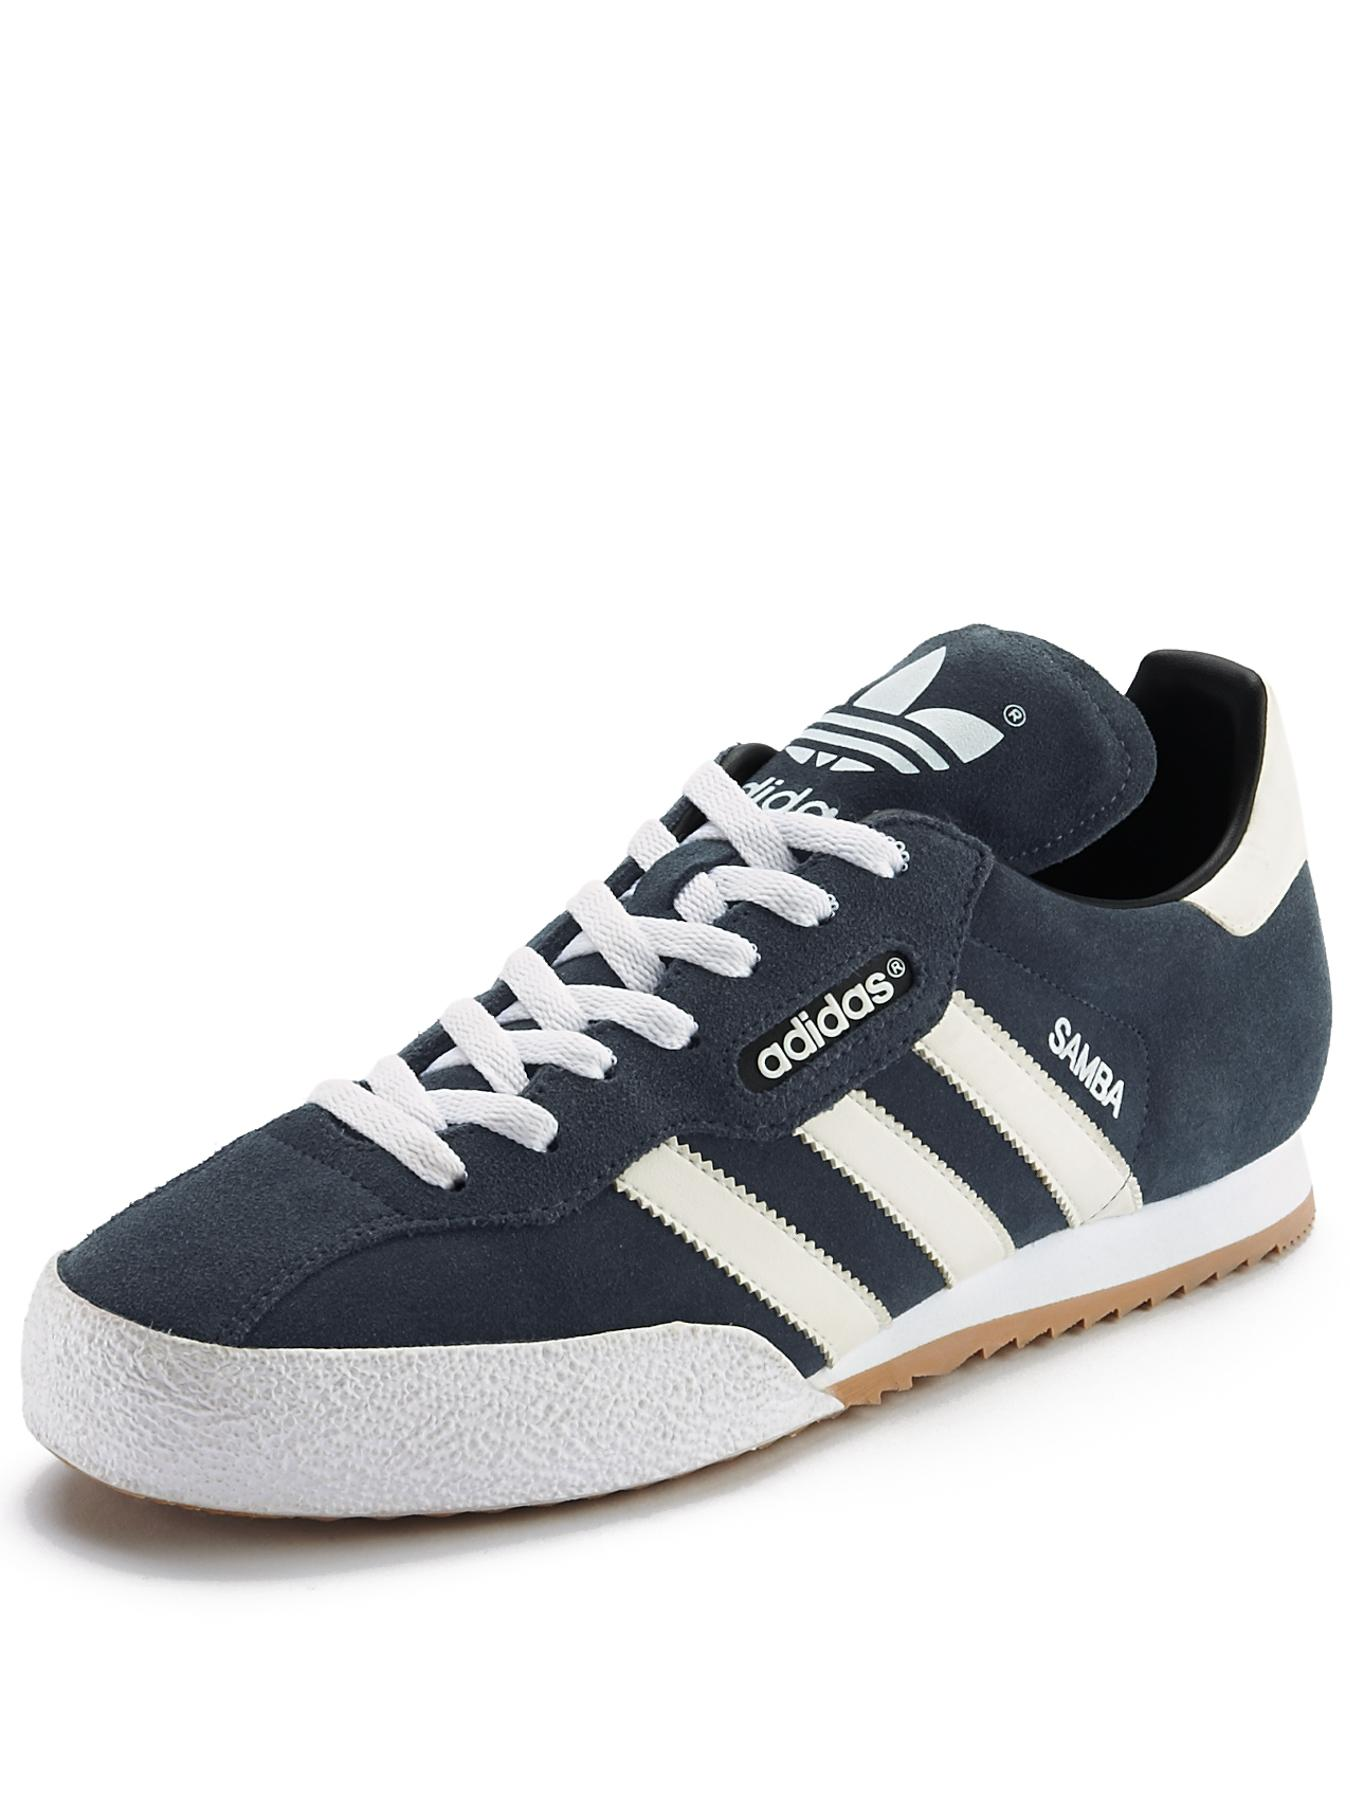 Samba Super Suede Trainers, Navy